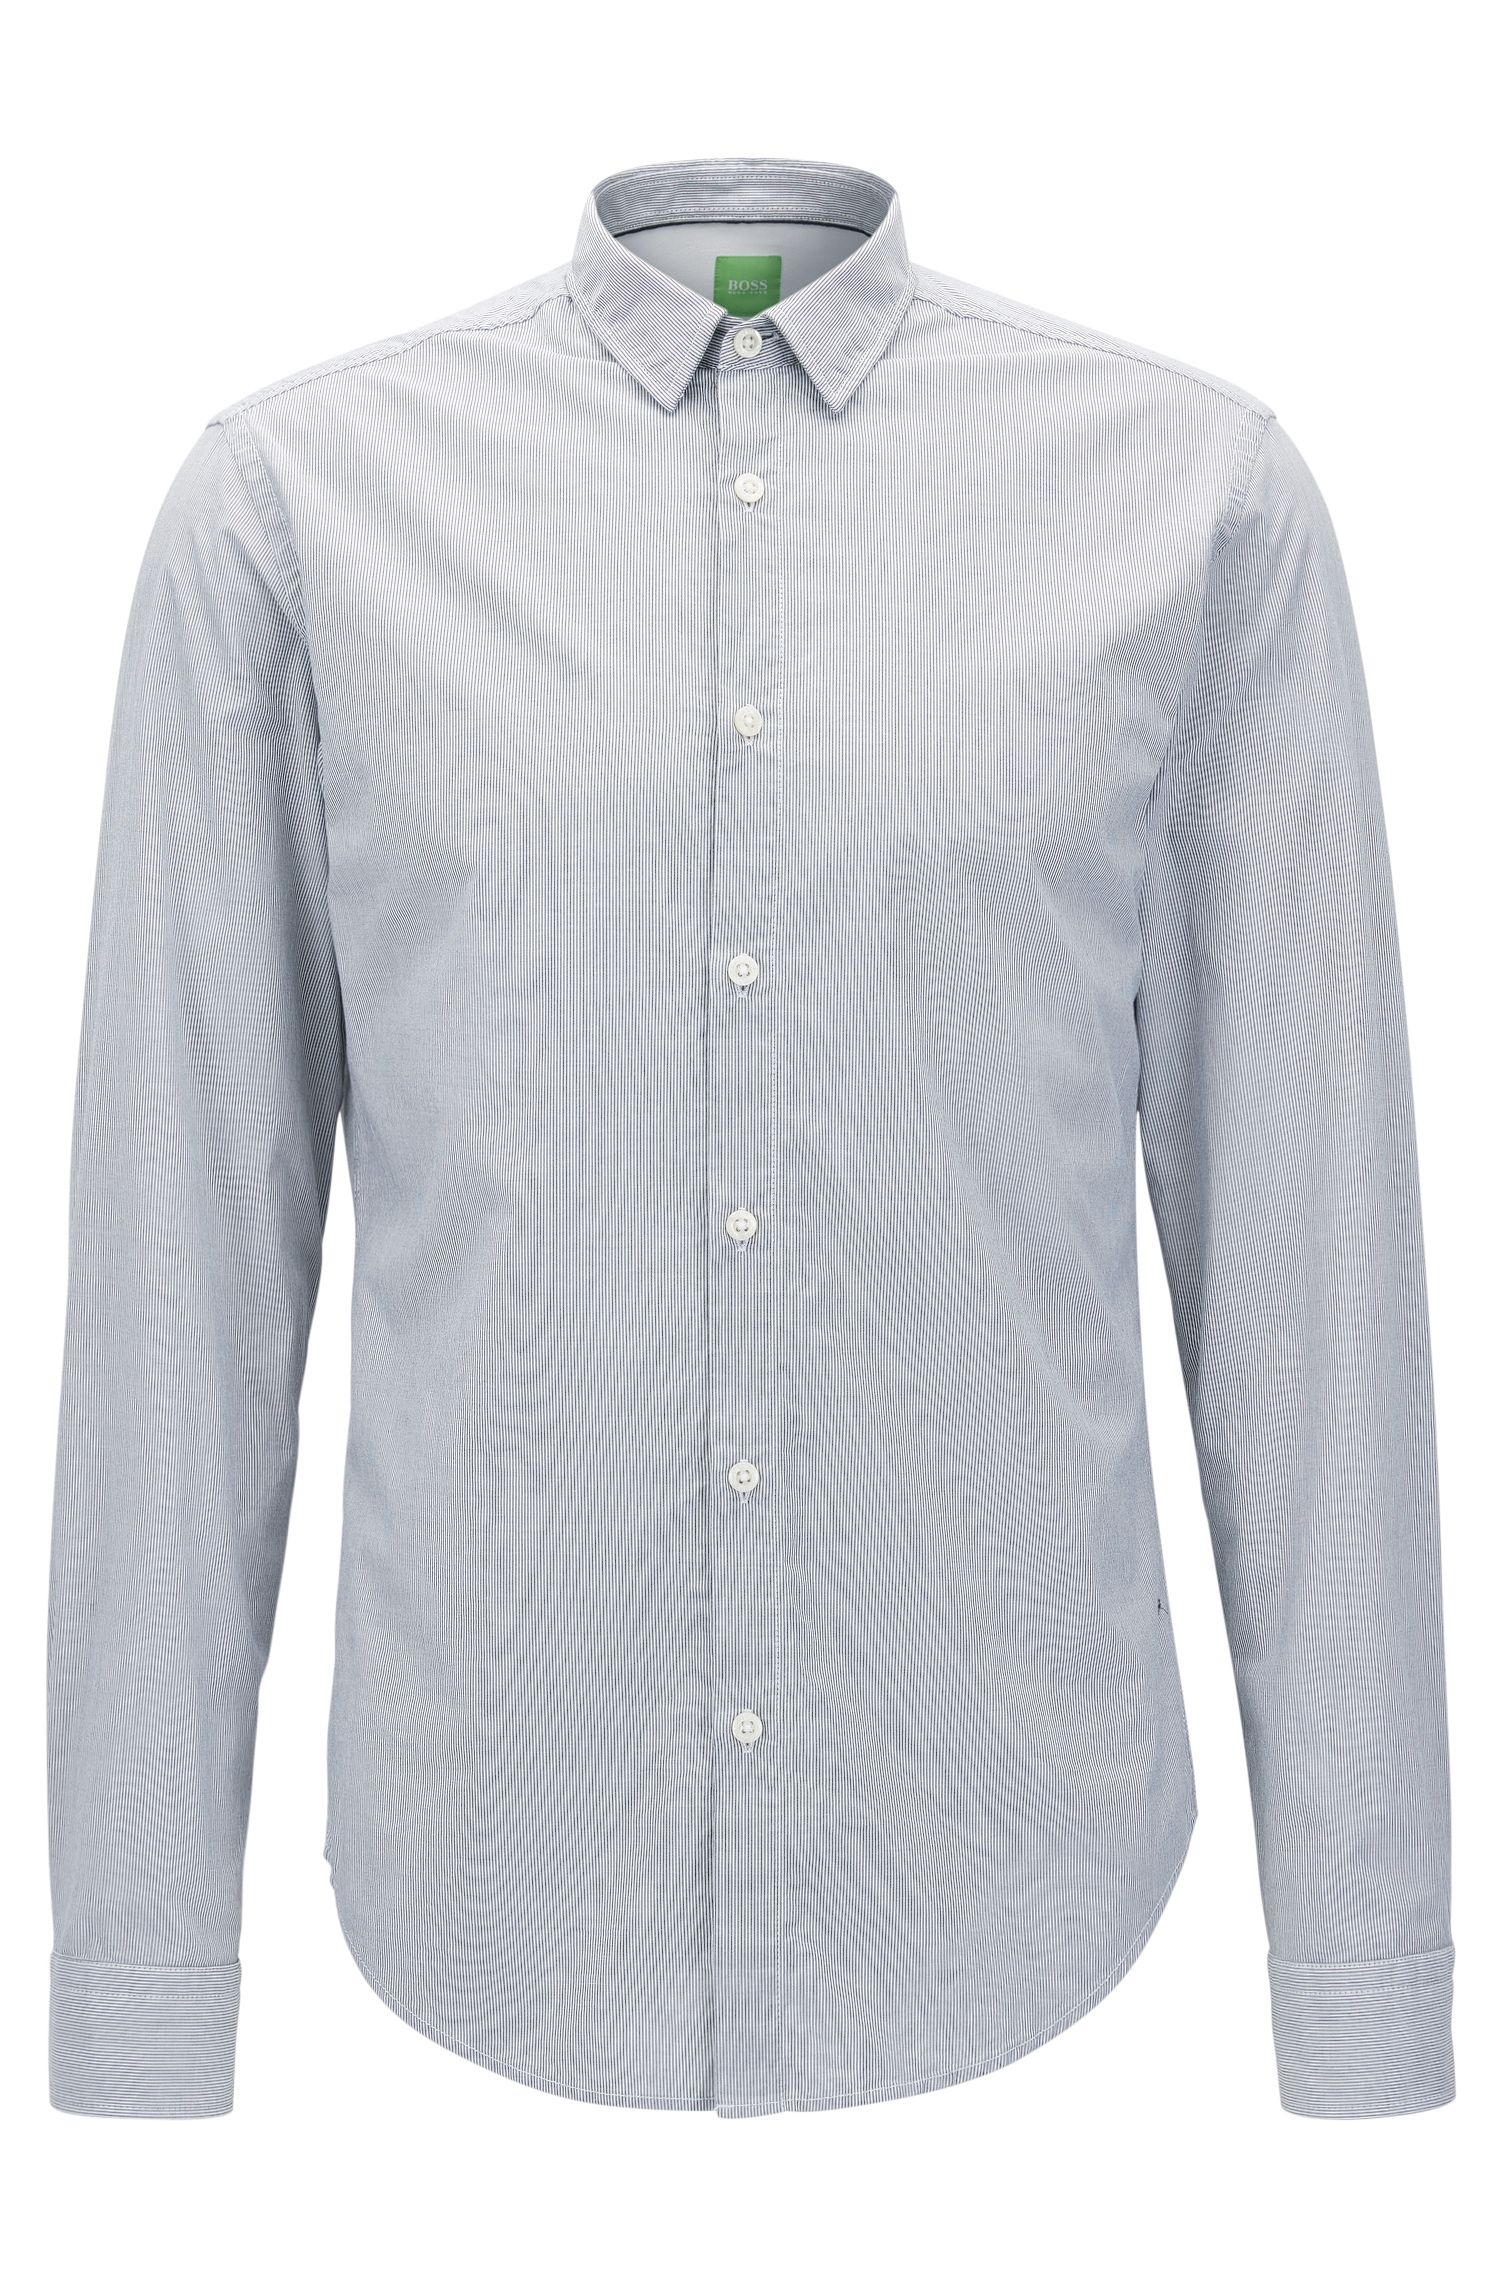 Camisa regular fit de rayas finas en algodón supersuave